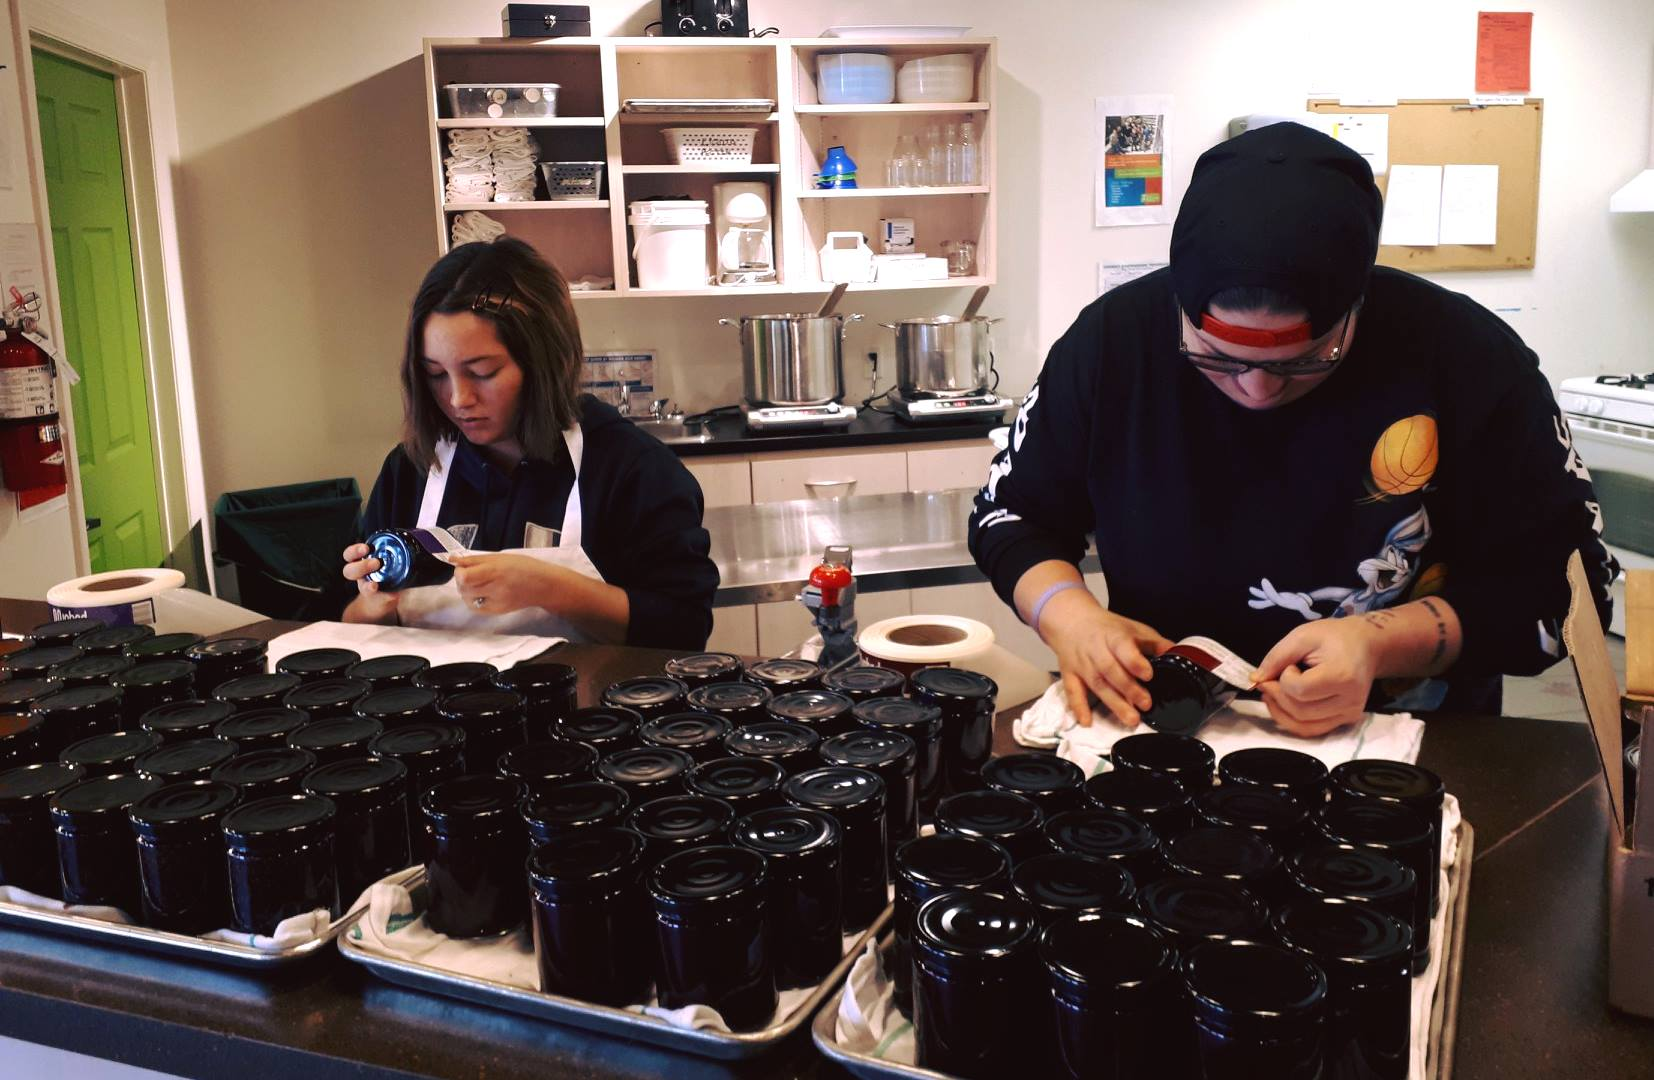 Youth apply labels to Mushed by YOU Jams